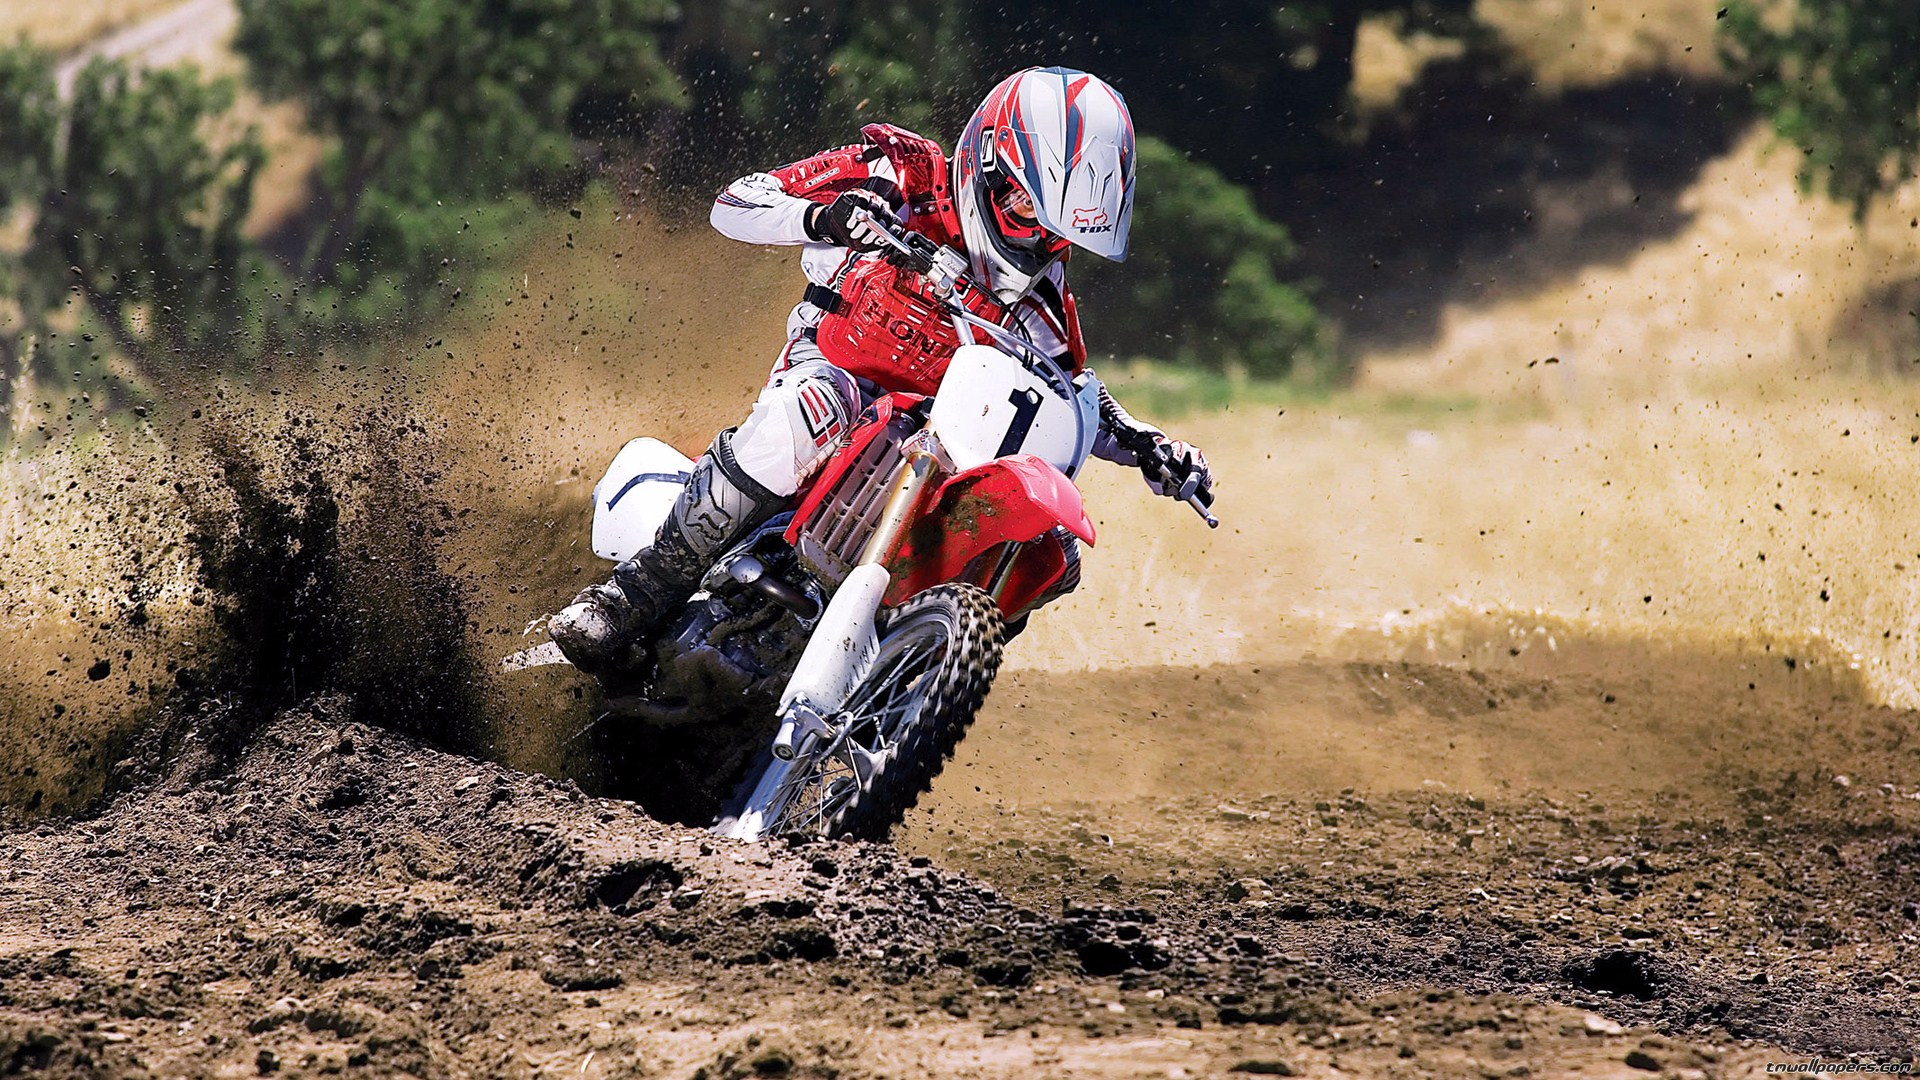 10 New Ktm Dirt Bike Wallpapers Full Hd 1080p For Pc: HD Dirt Bike Wallpapers